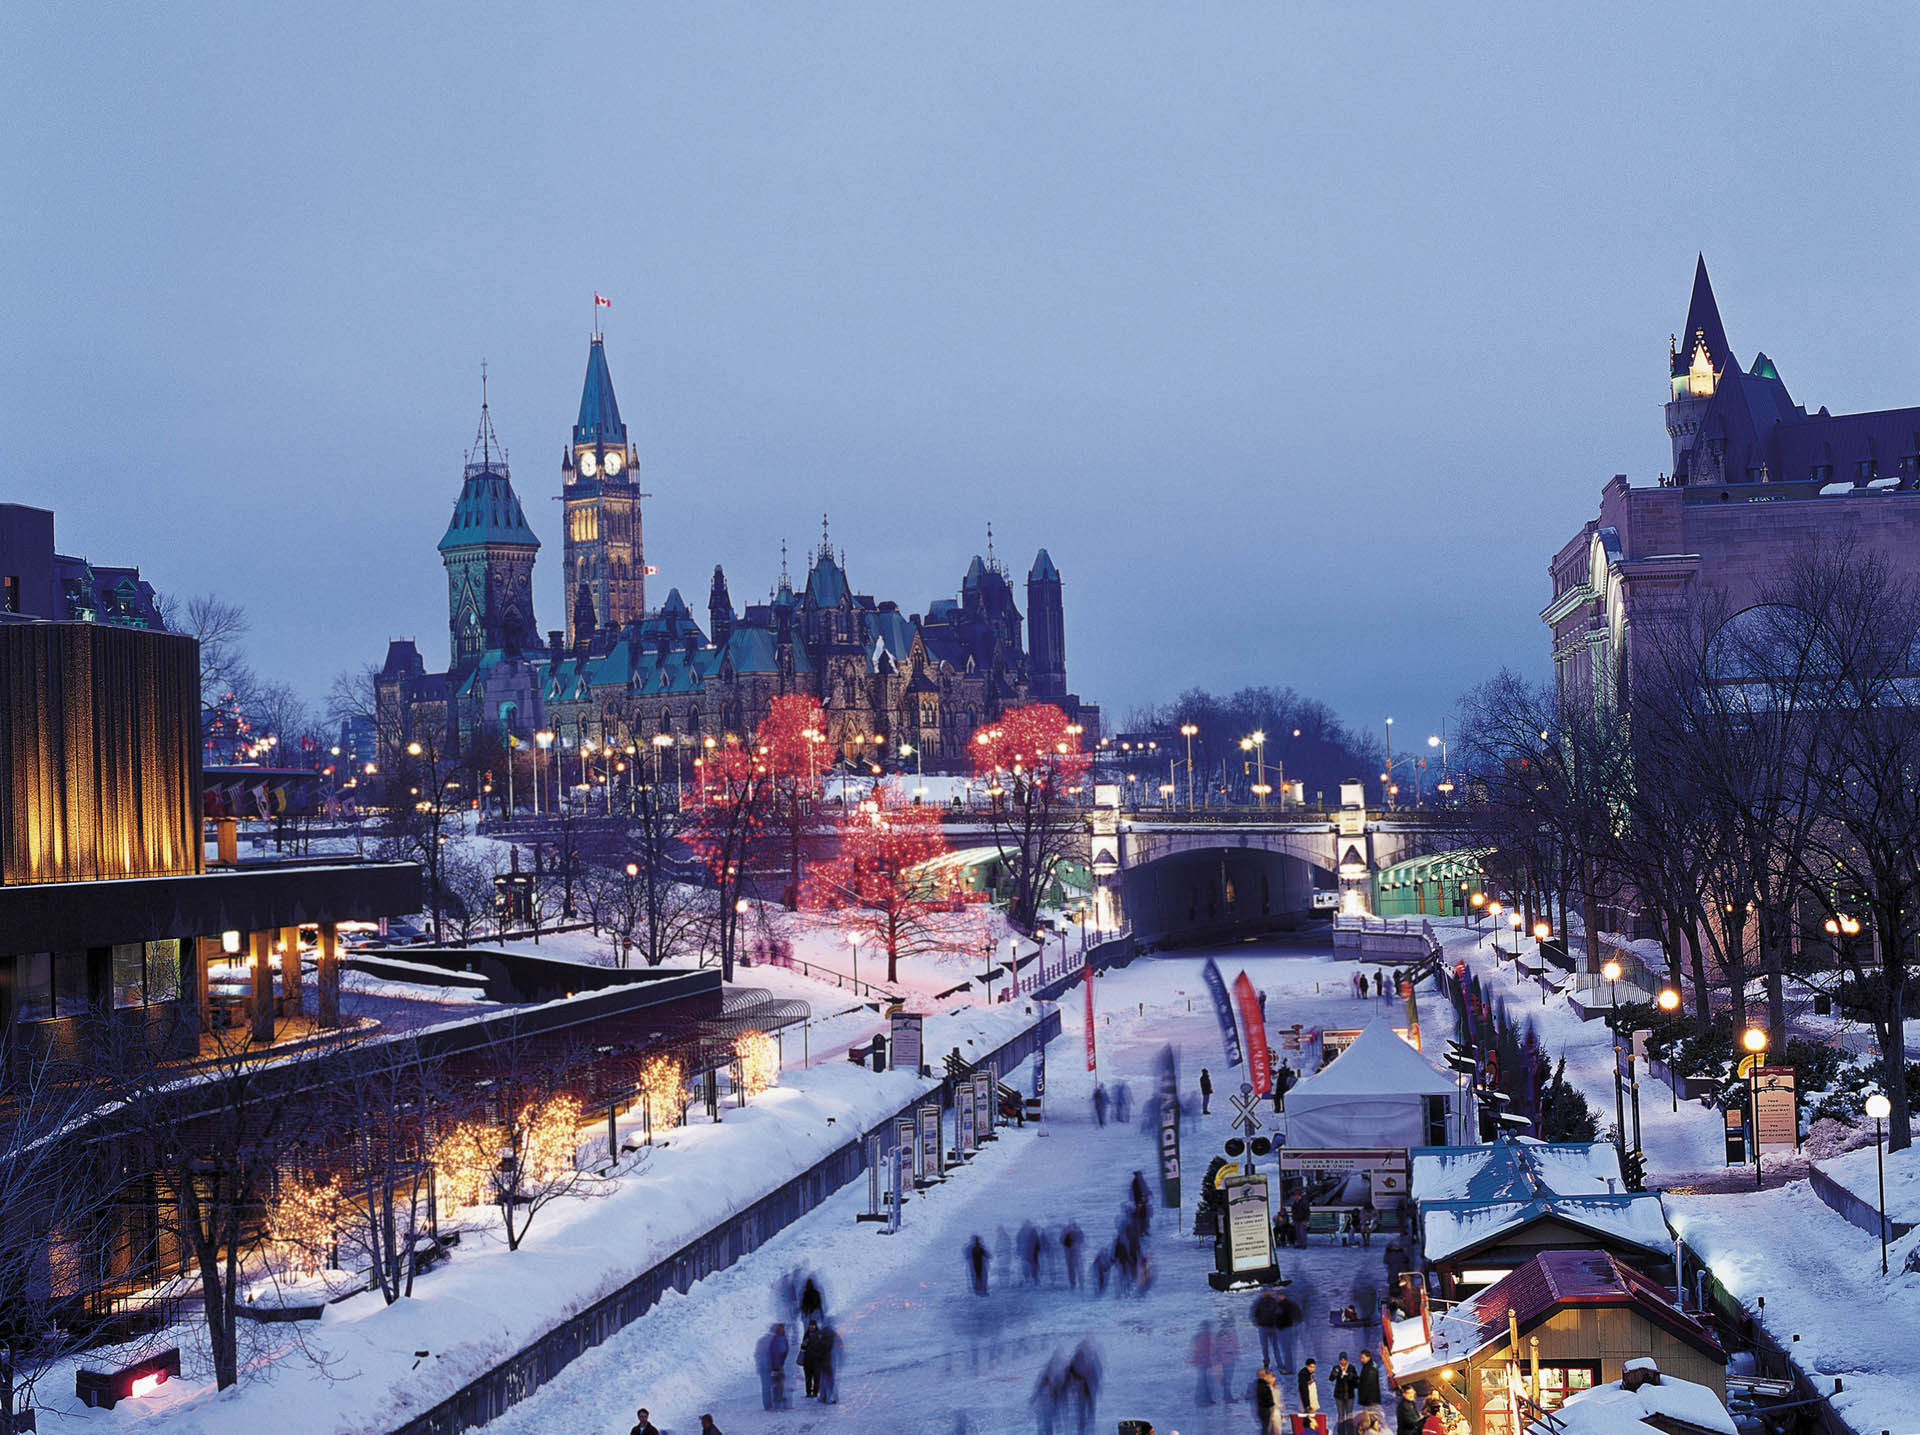 Winter view of the Canal Rideau with Canada's Parliamant in the background